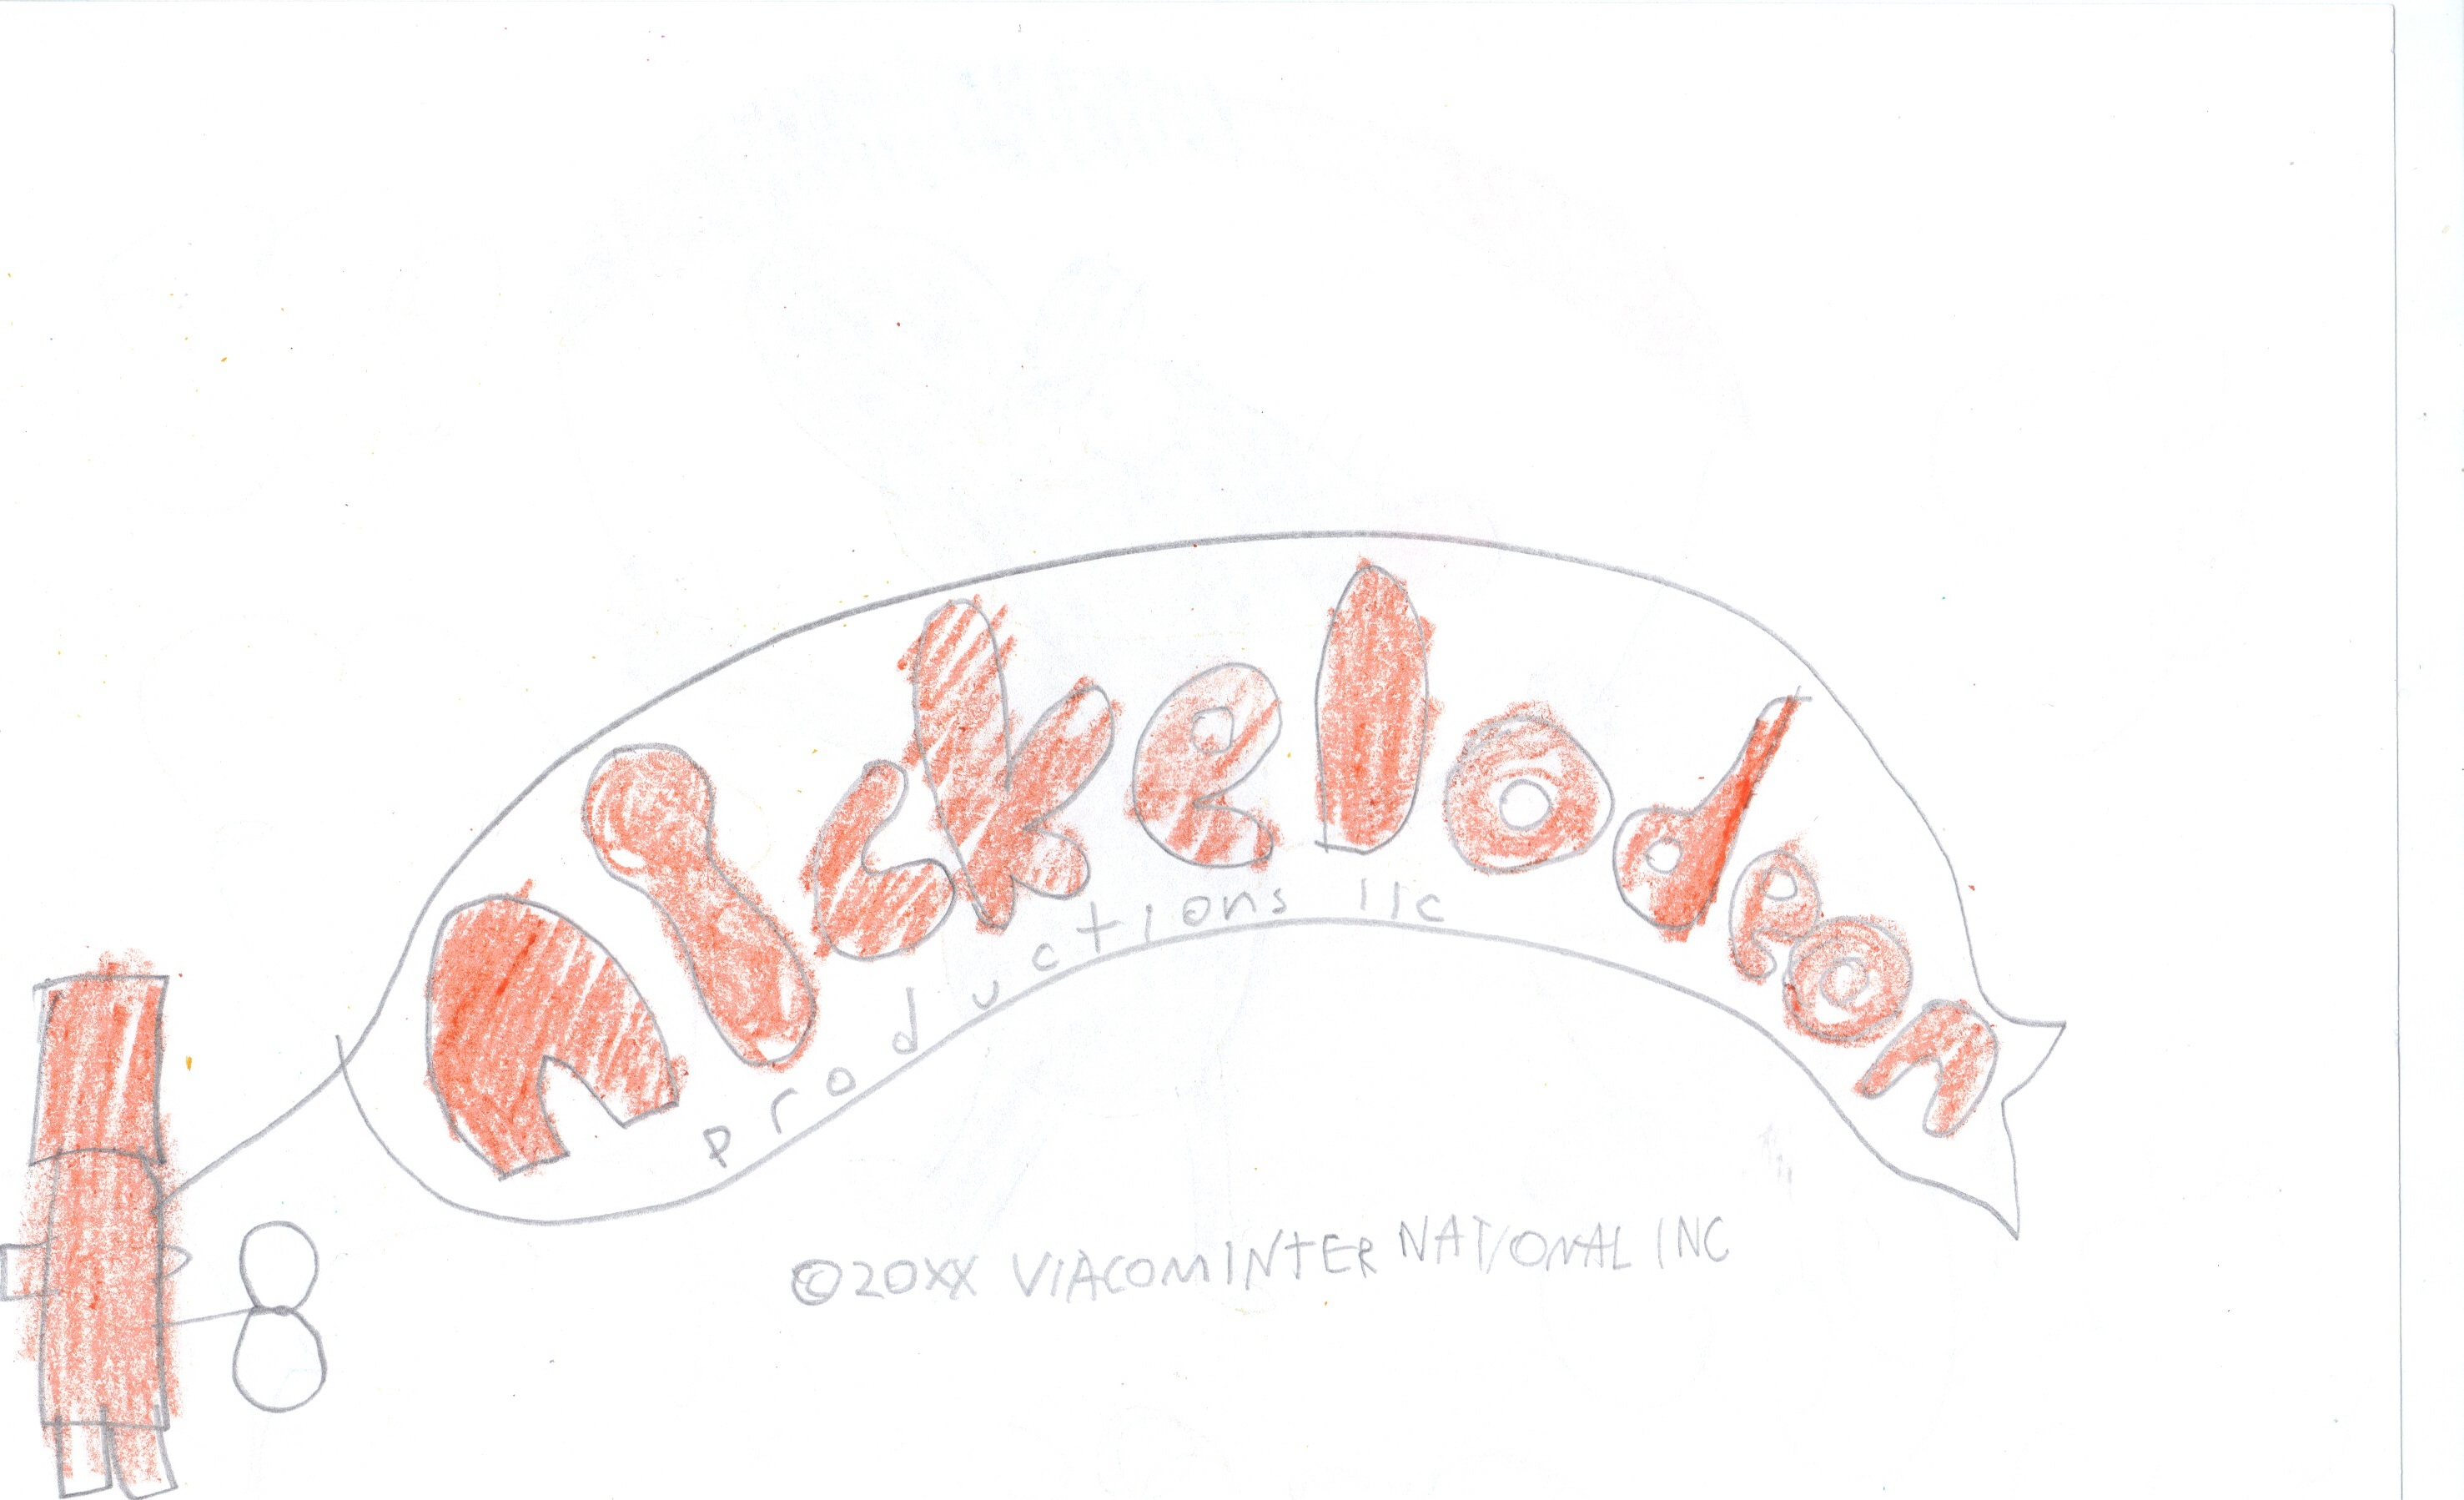 Wind Up Toy with Nickelodeon Productions logo by JohnHowarth.